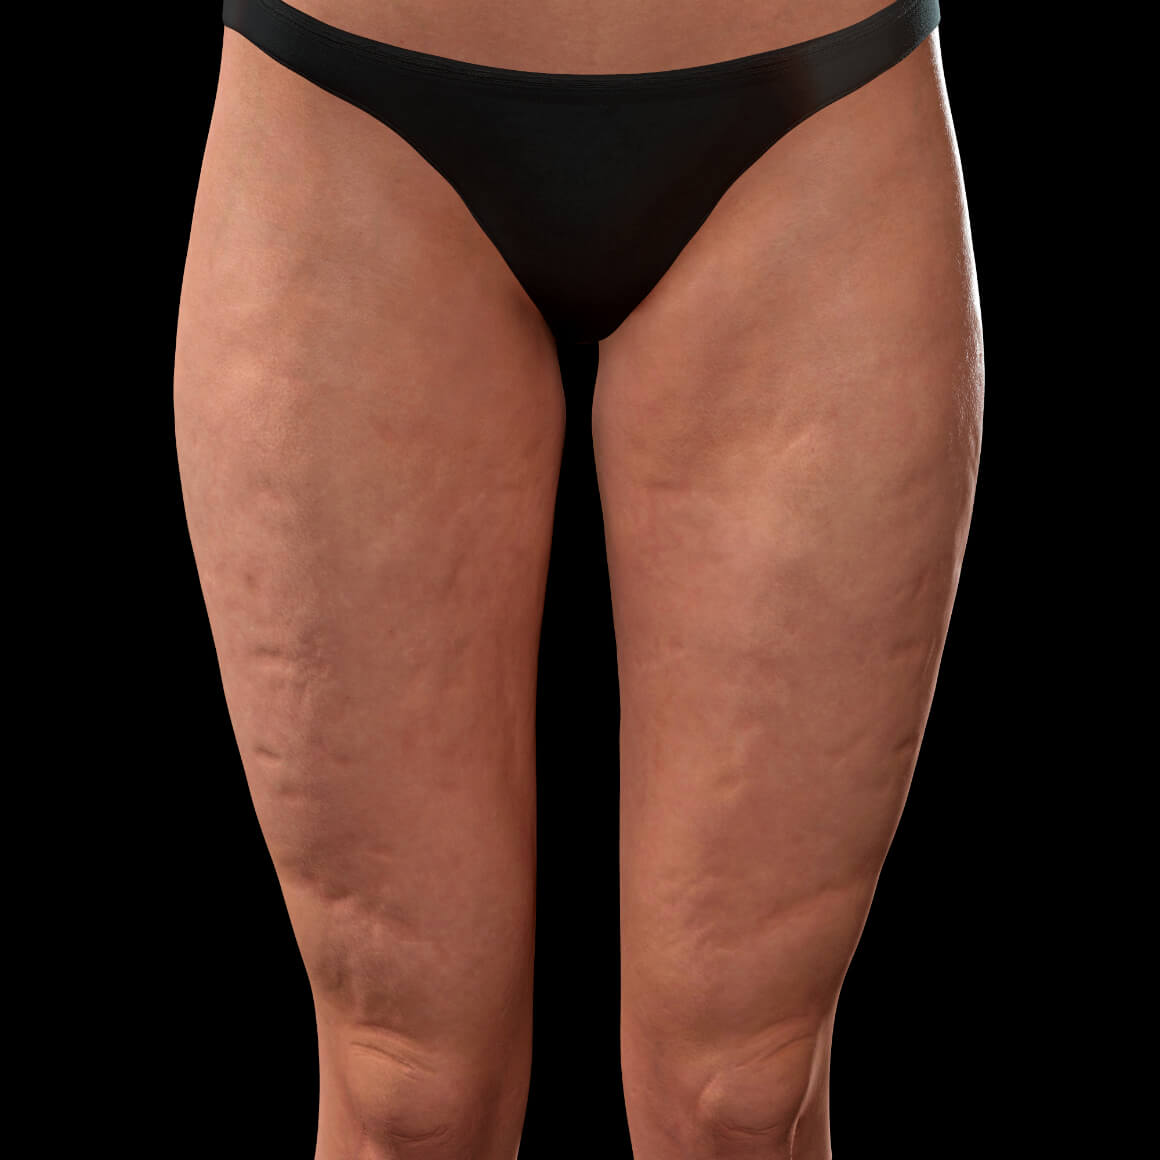 Front thighs of a female patient from Clinique Chloé showing cellulite